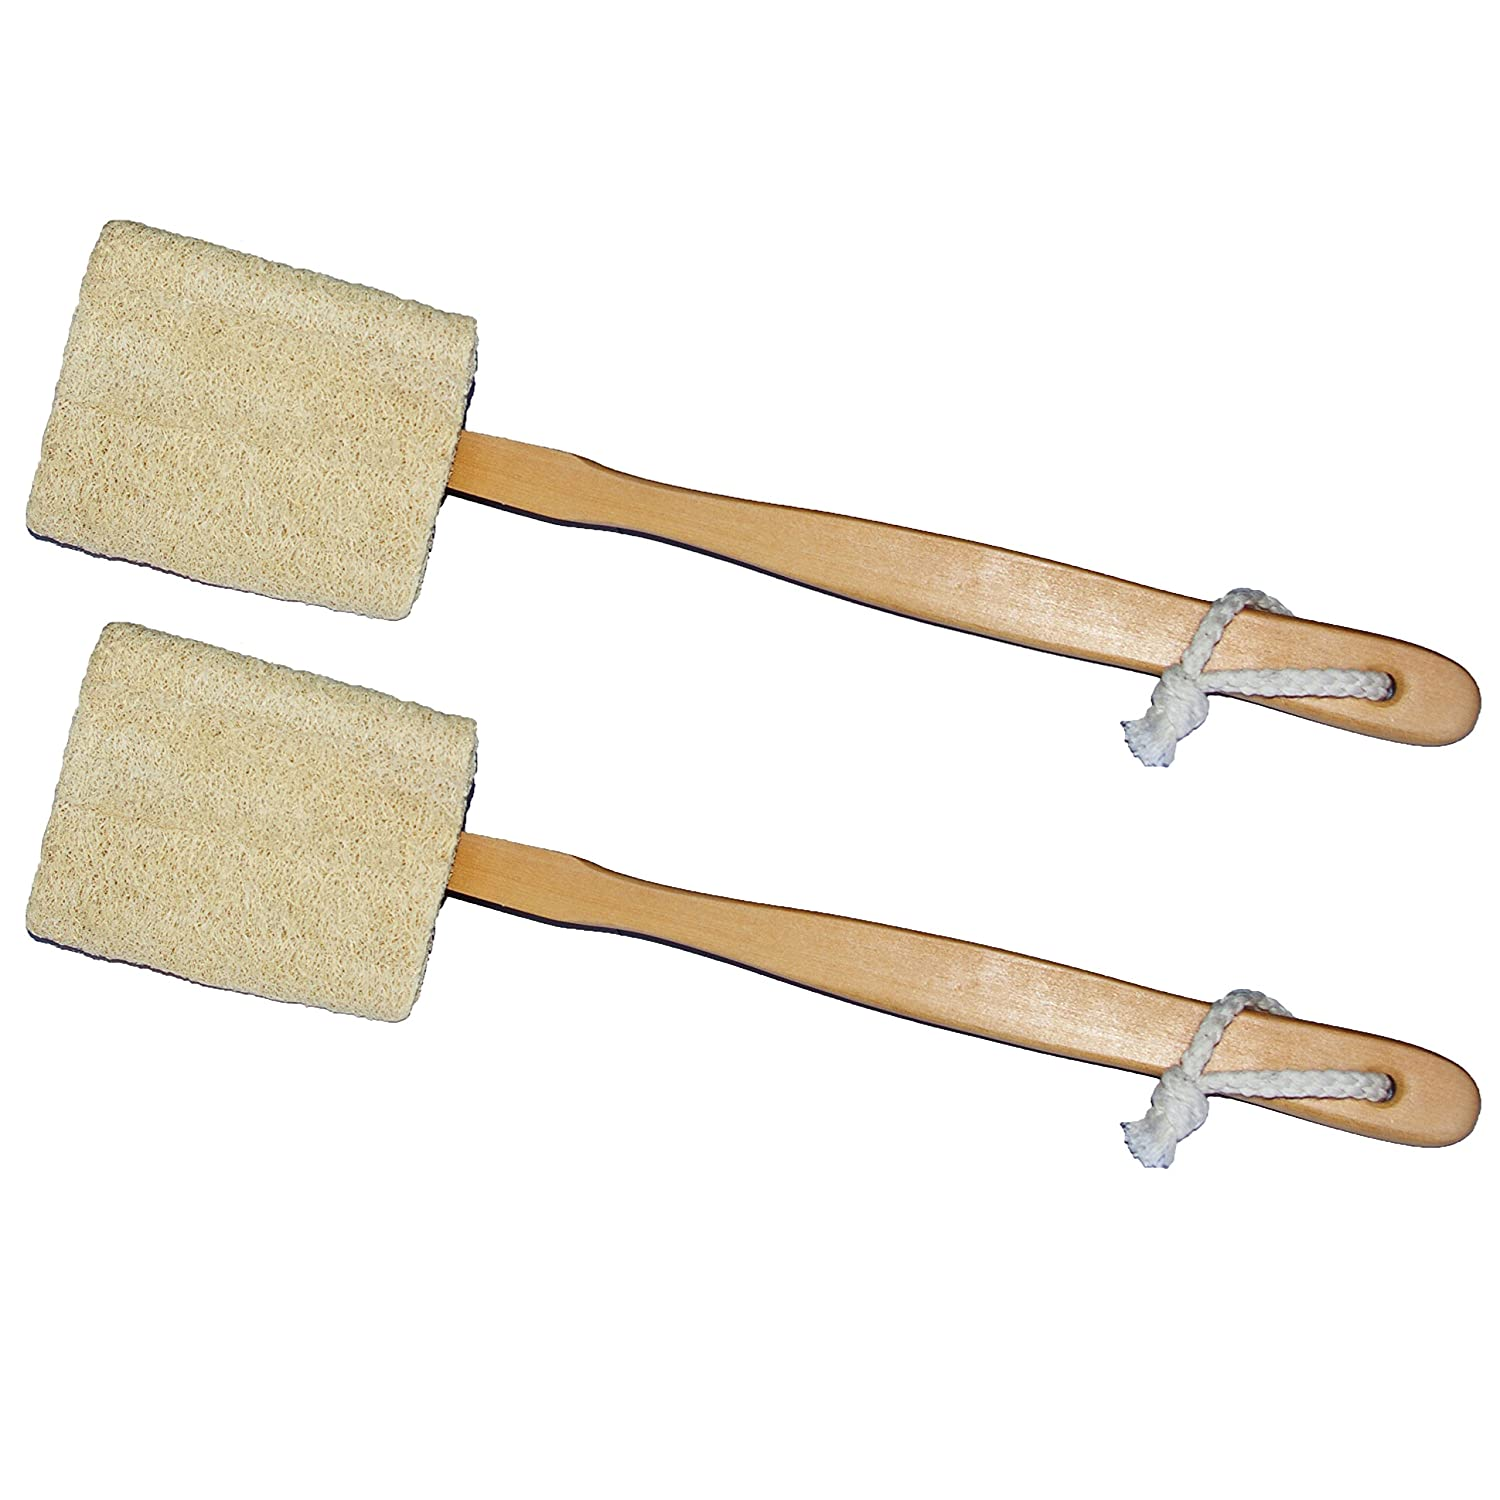 2 Pack Natural Exfoliating Loofah Bath Brush On a Stick - With Long Wooden Handle Back Brush For Men & Women - Shower Sponge Back Body Scrubber